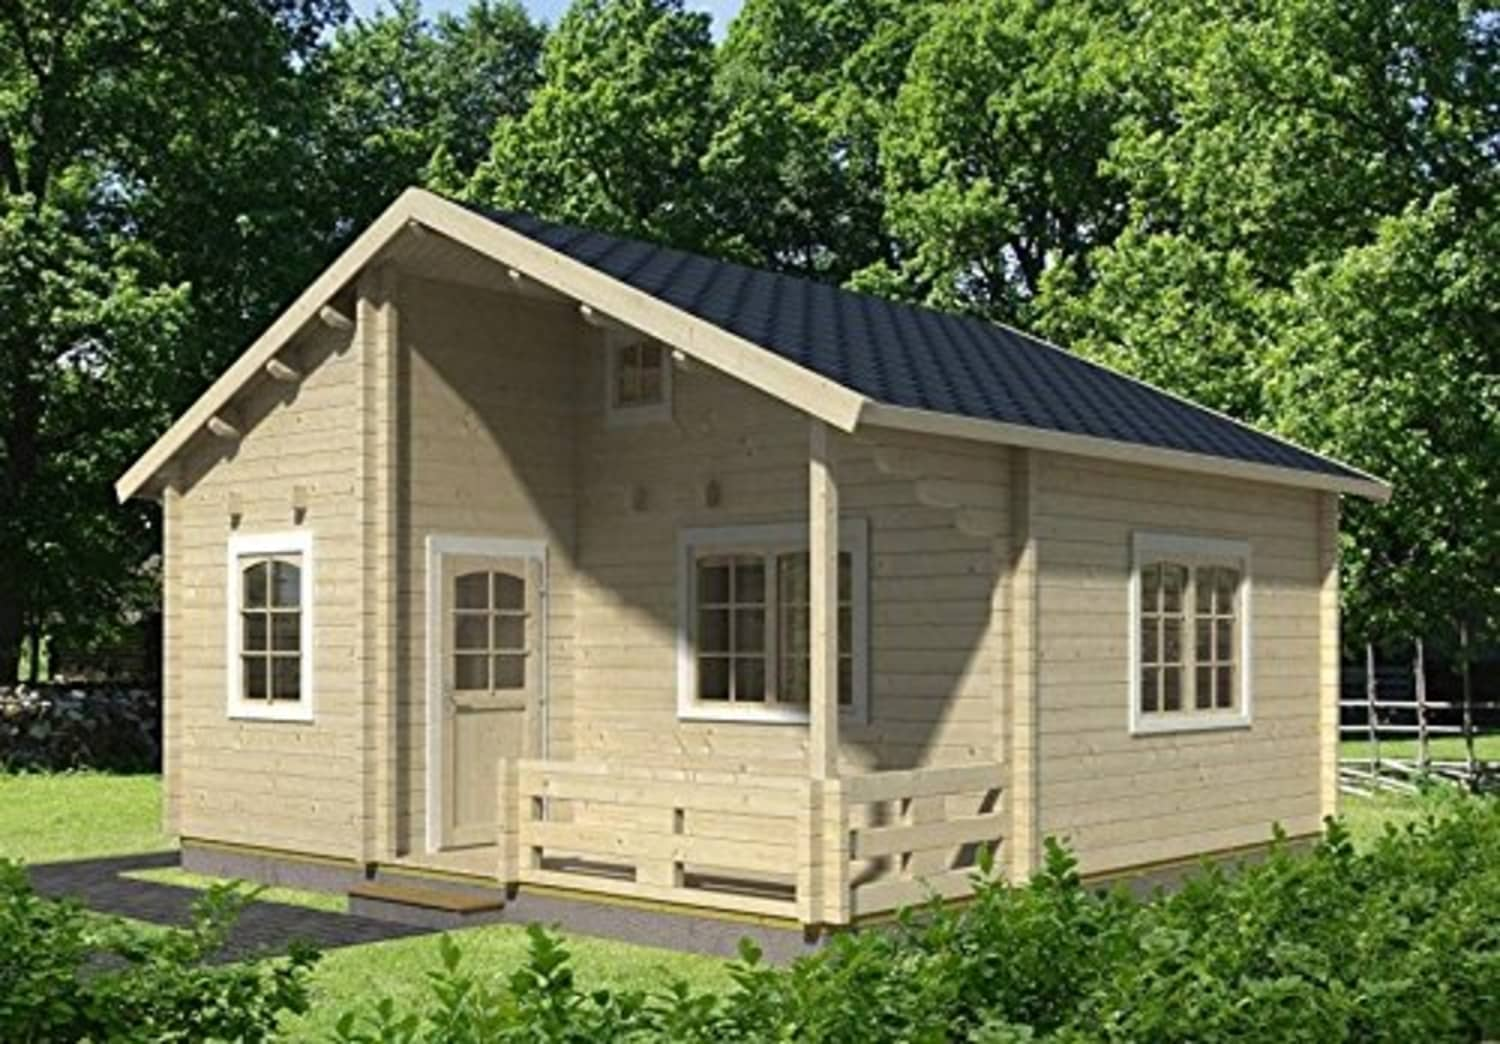 These Tiny House Kits on Amazon Start at Only $4,690